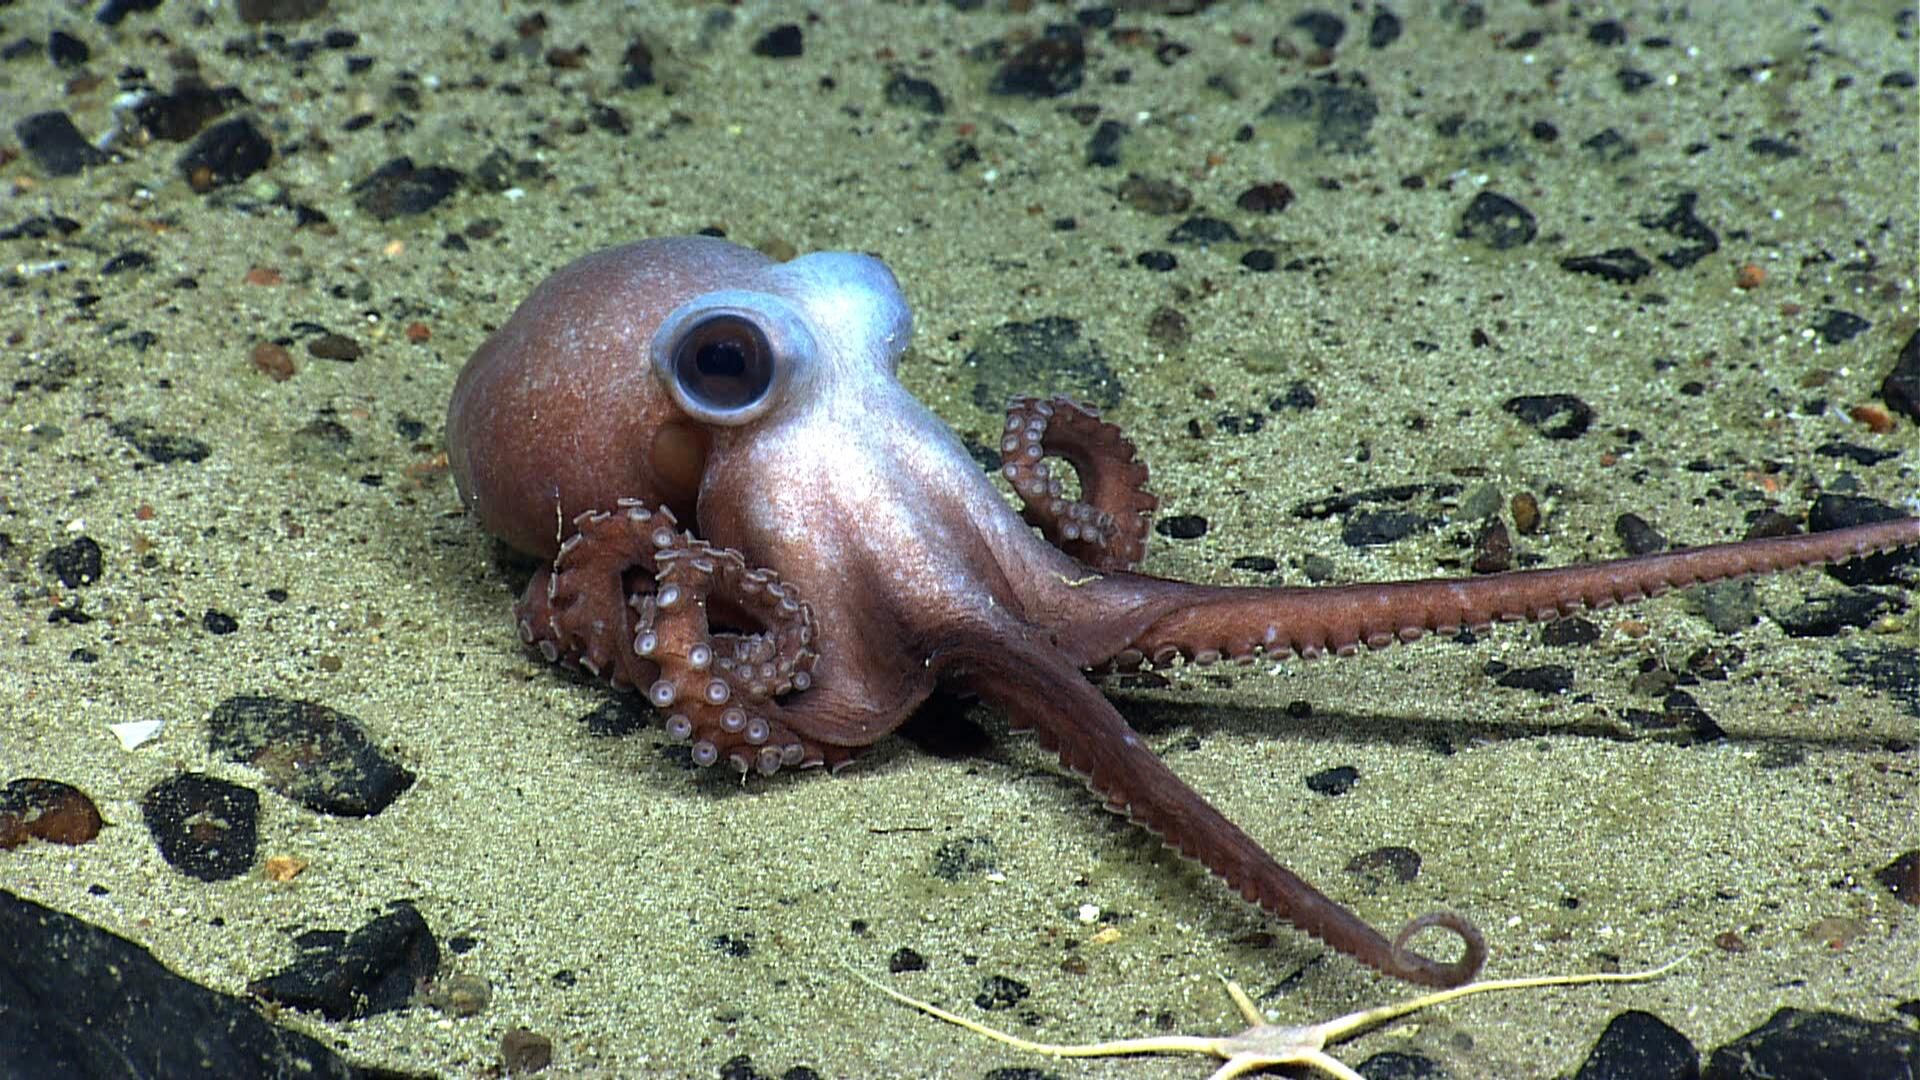 An octopus stretches its tentacles on Physalia Seamount. This animal is a predator like all octopus and squid species, and feeds on fish and invertebrates on the seamount. NOAA Okeanos Explorer Program, 2013 Northeast U.S. Canyons Expedition Science Team